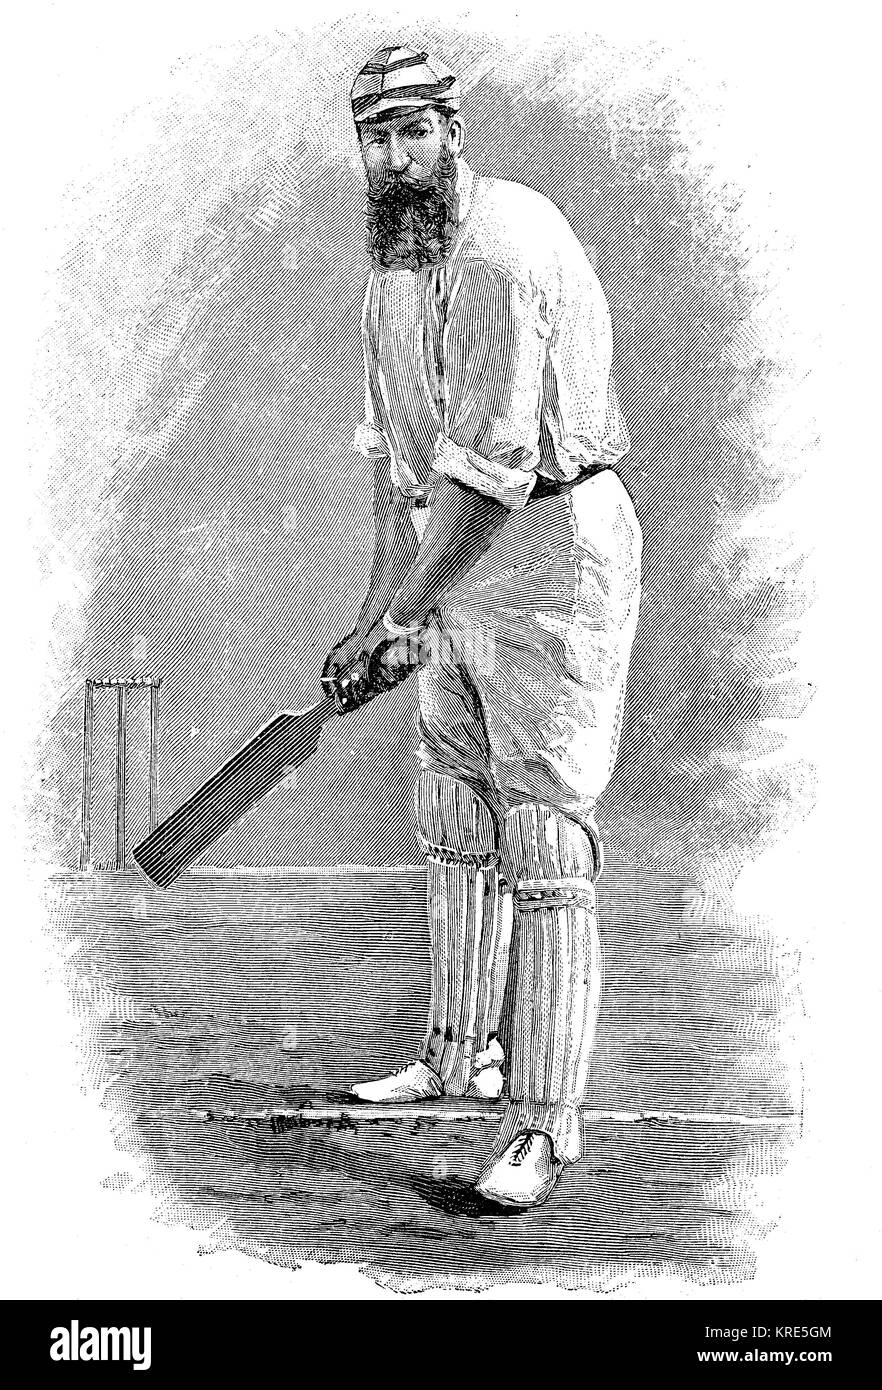 Man at the stroke, English cricket player, man in typical clothes and game attitude, c. 1870, digital improved reproduction - Stock Image